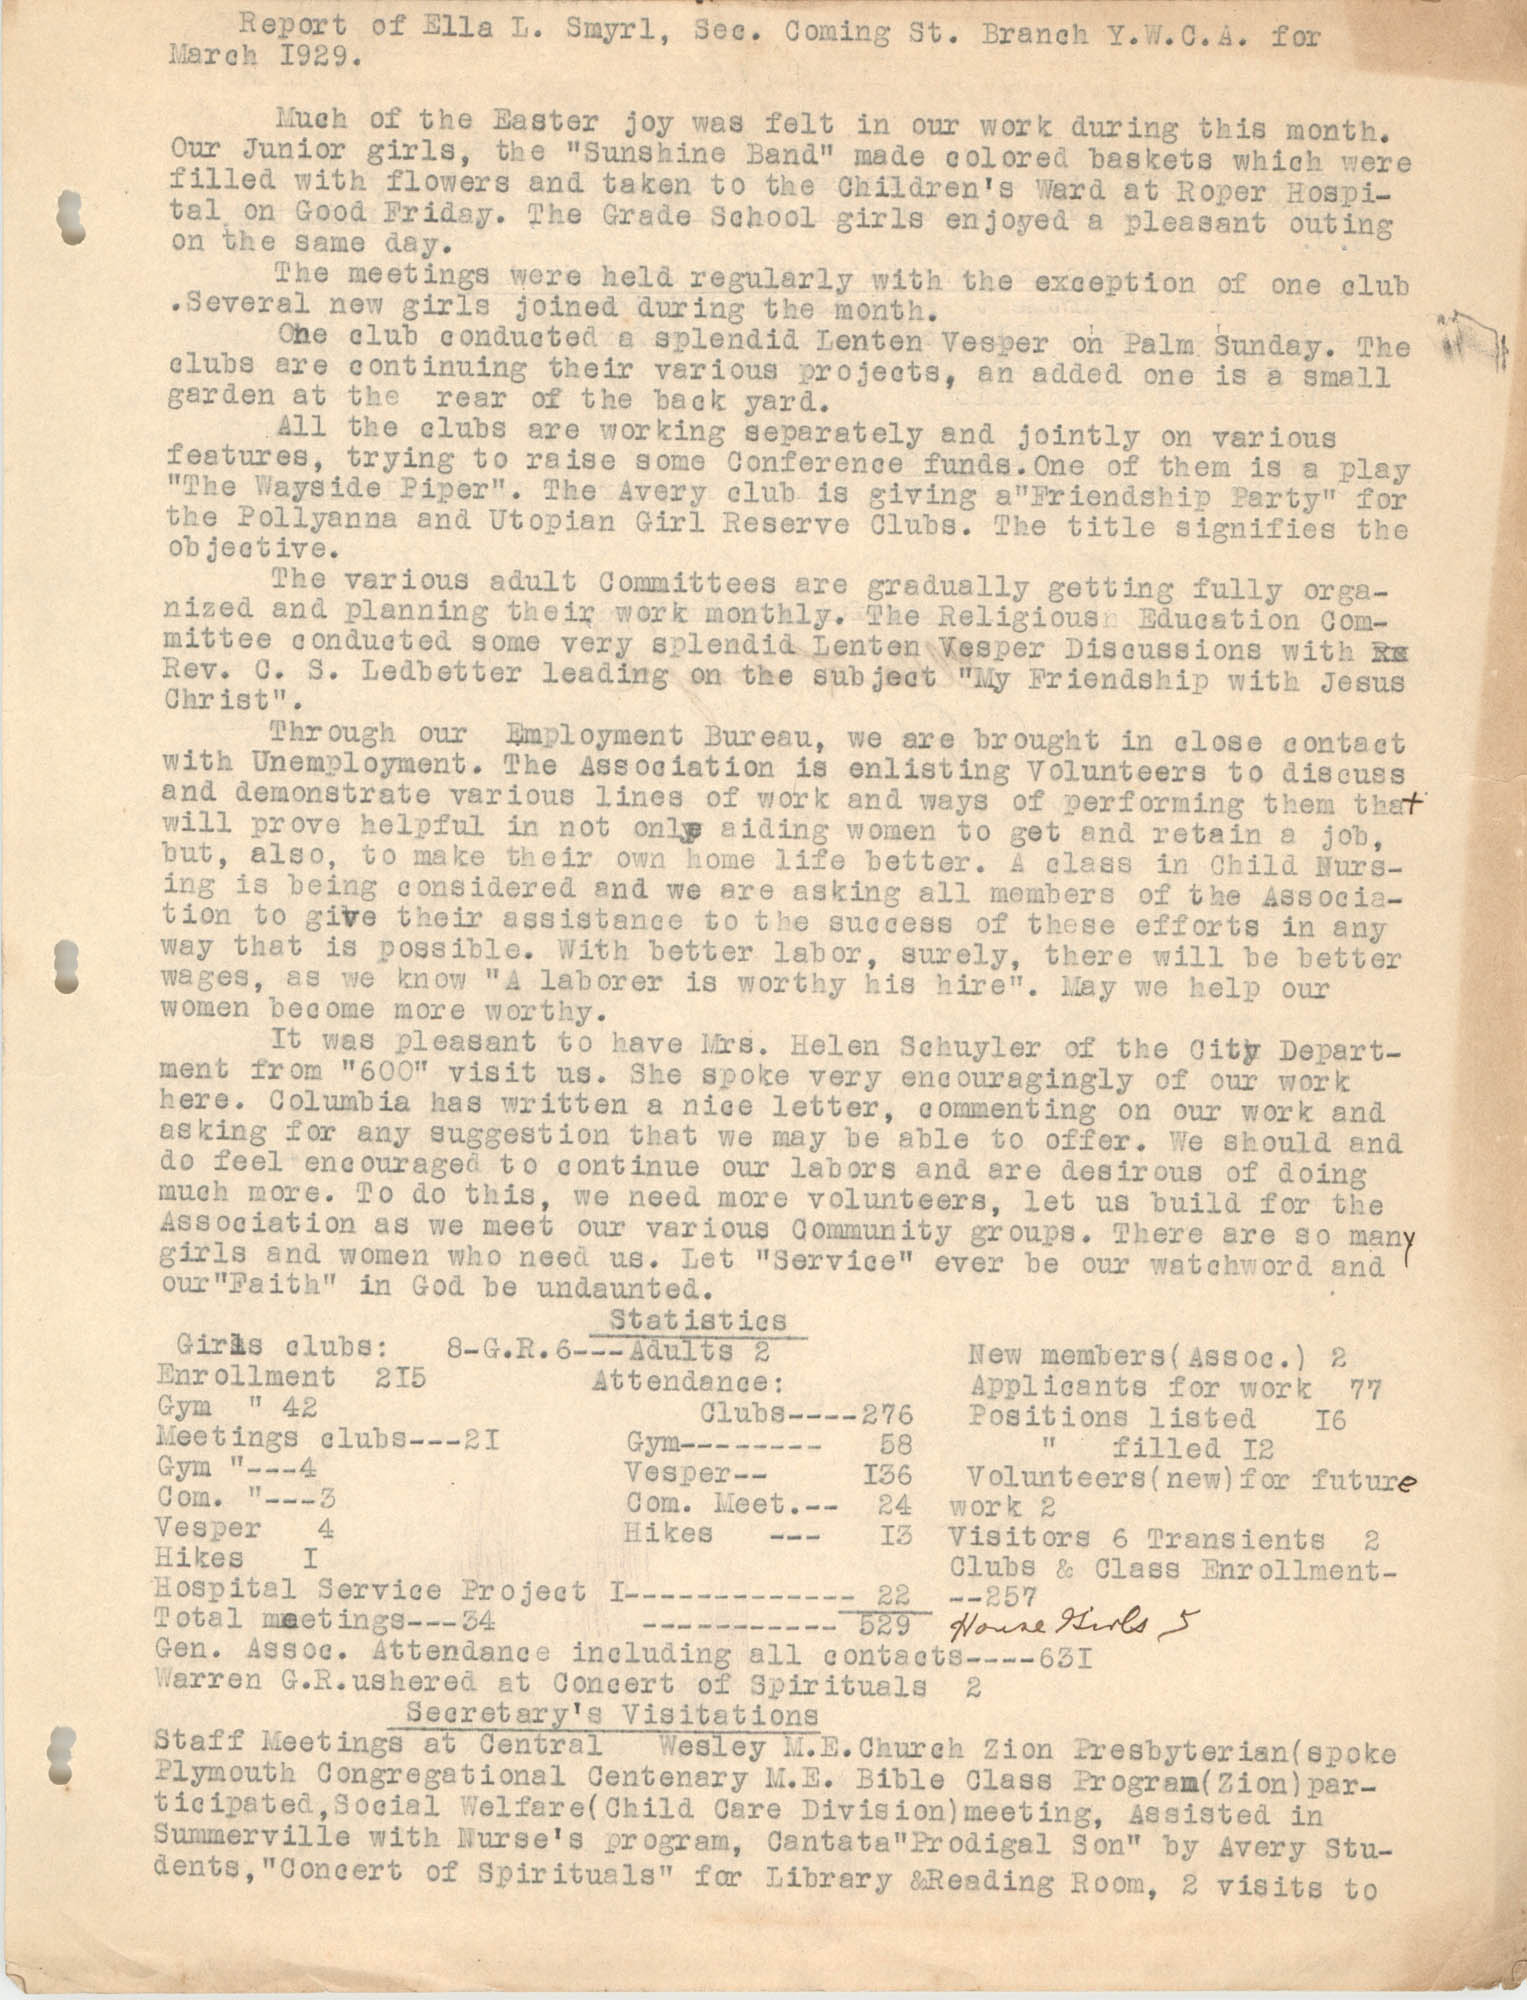 Monthly Report for the Coming Street Y.W.C.A., March 1929